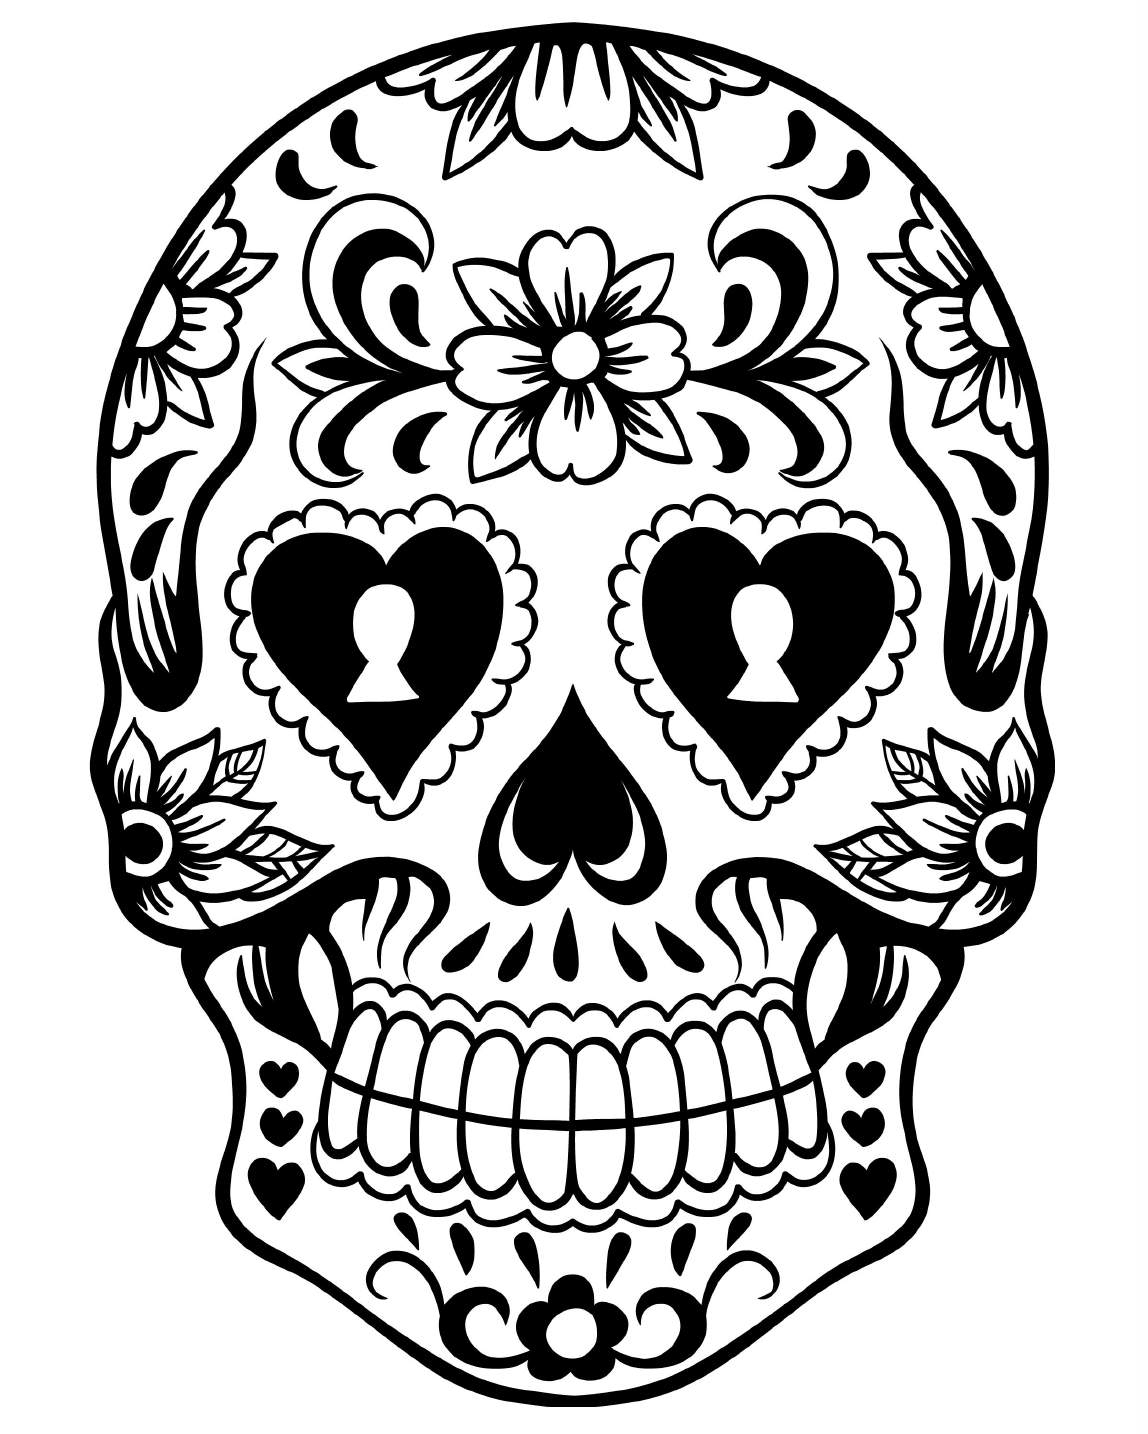 Skull Black And White Drawing at GetDrawings.com | Free for personal ...